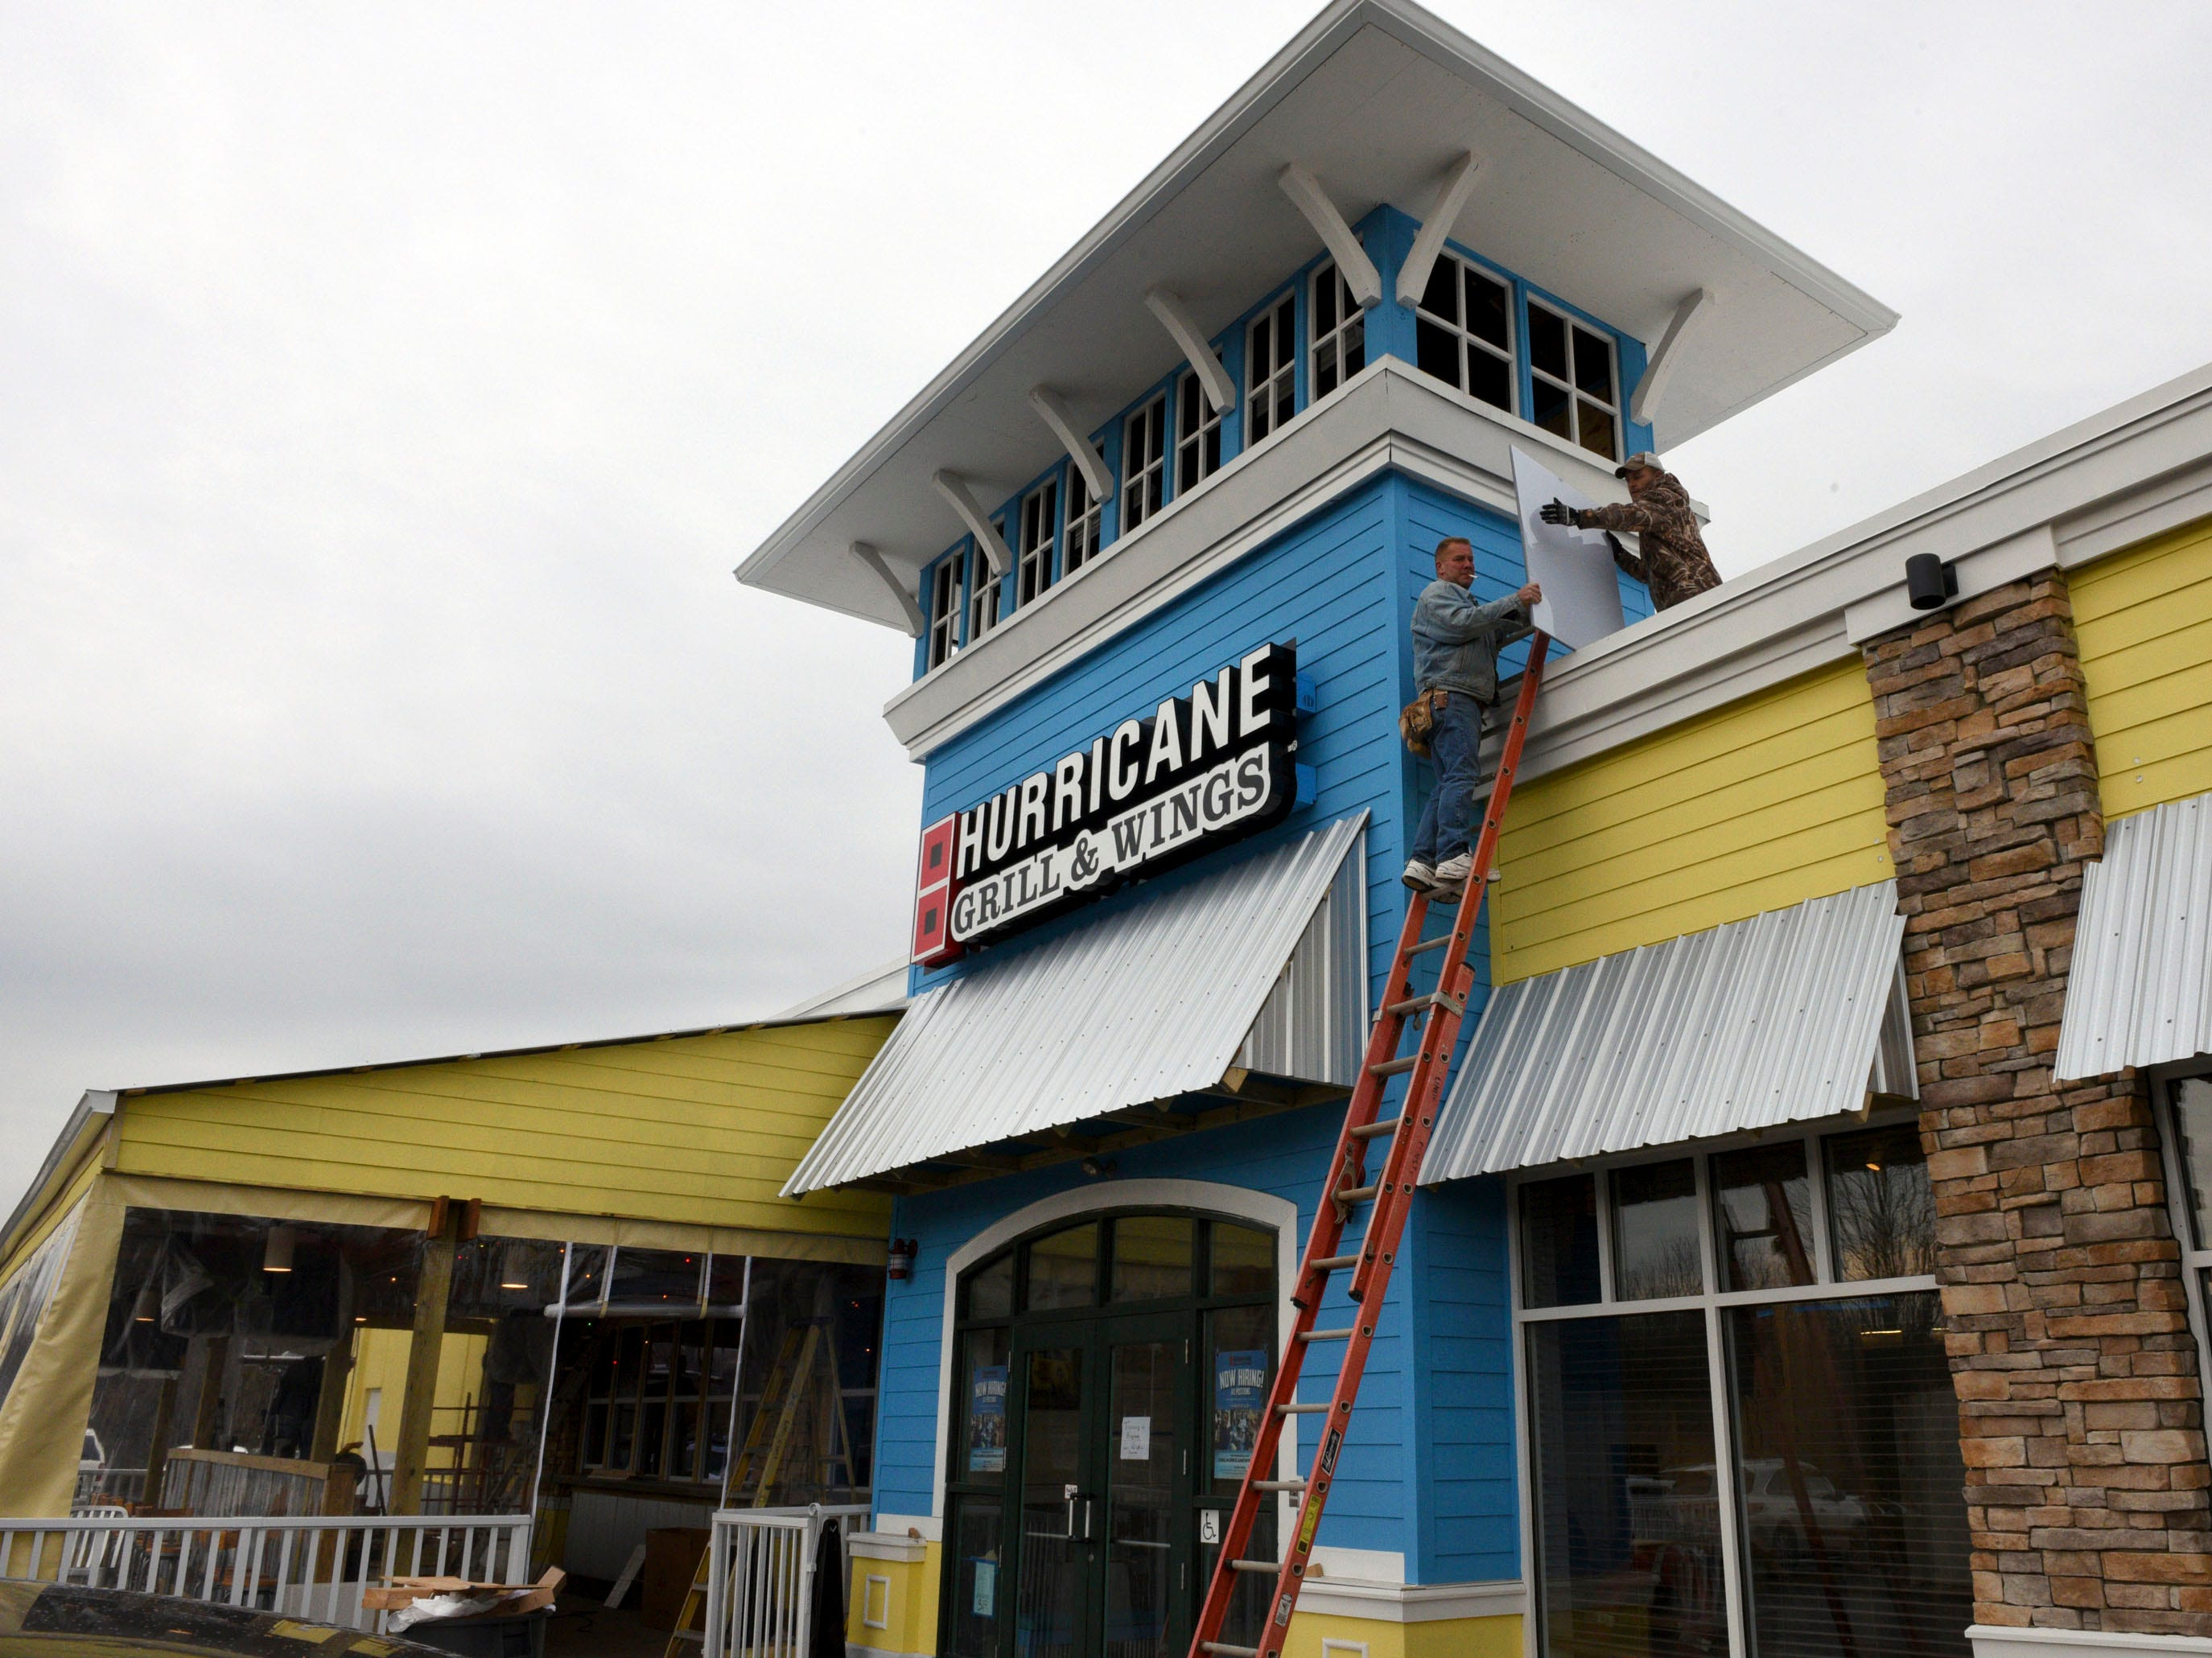 Knoxville resident Henry Sadiq is opening the state's first Hurricane Grill & Wings in the former Ruby Tuesday off Lovell Road. The restaurant officially opens Dec. 8. Corporate training staffers are in town training the staff this week. Thursday, Dec. 4, 2014.